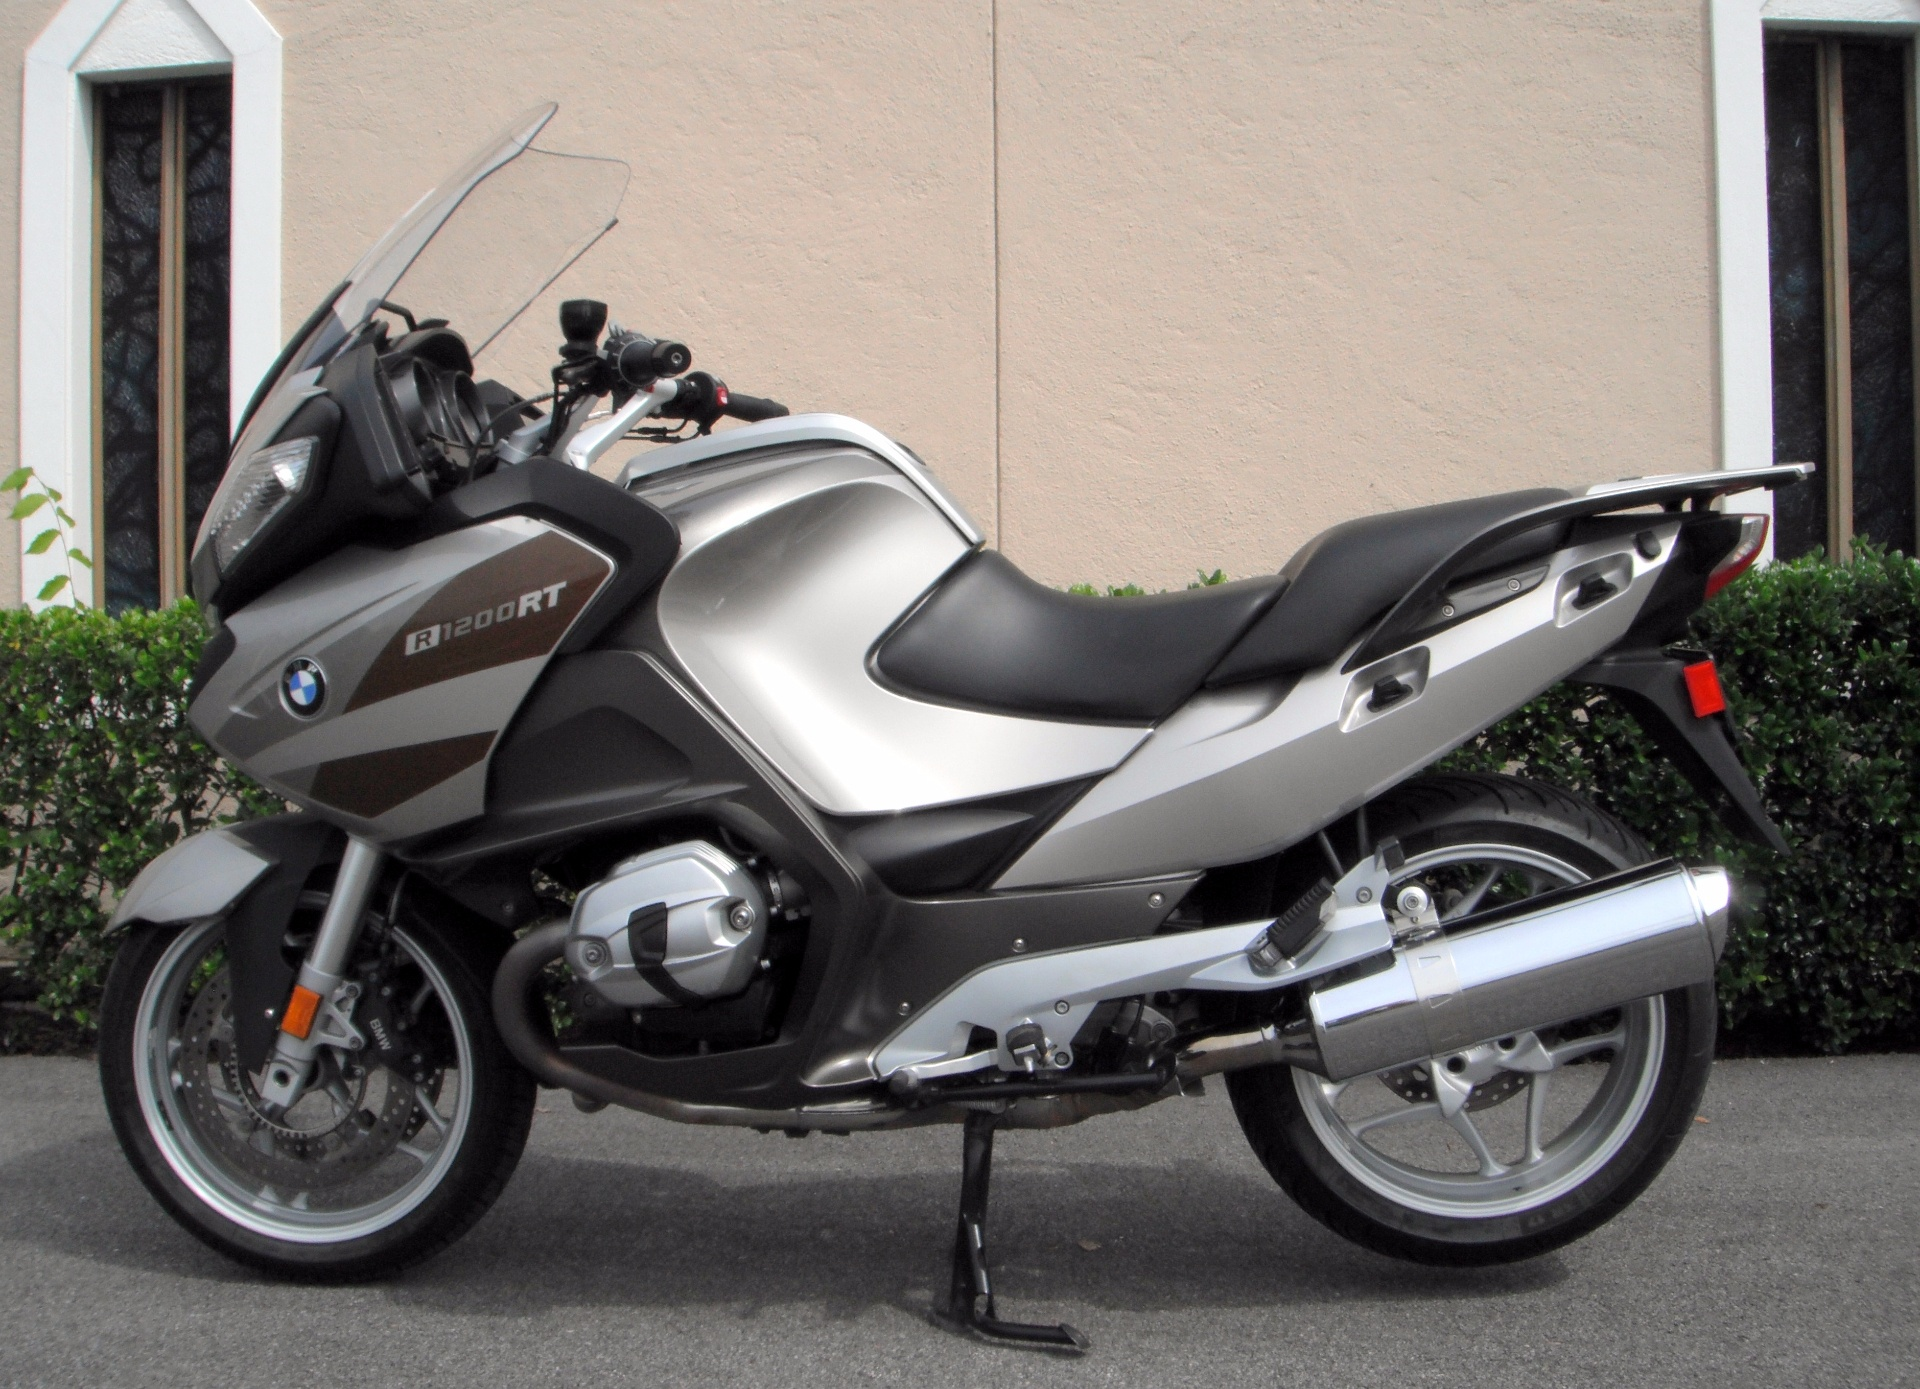 used 2012 bmw r 1200 rt motorcycles in south houston tx. Black Bedroom Furniture Sets. Home Design Ideas